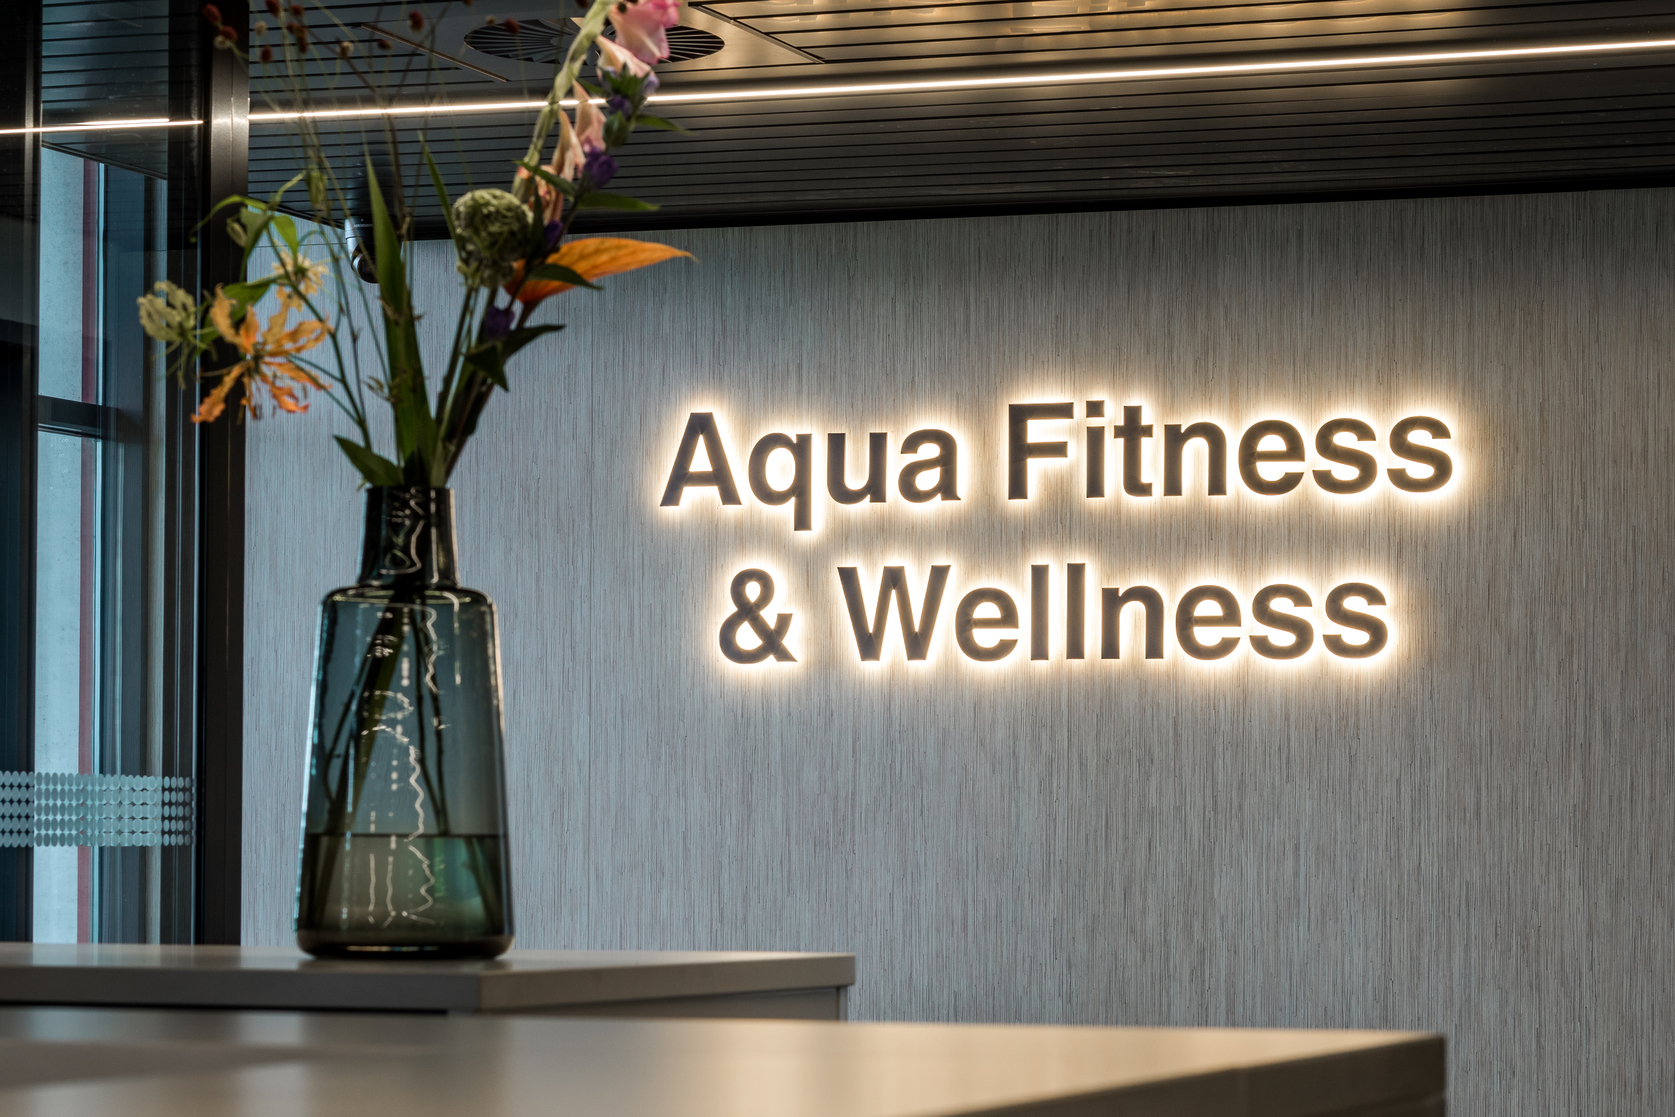 Aqua Fitness & Wellness